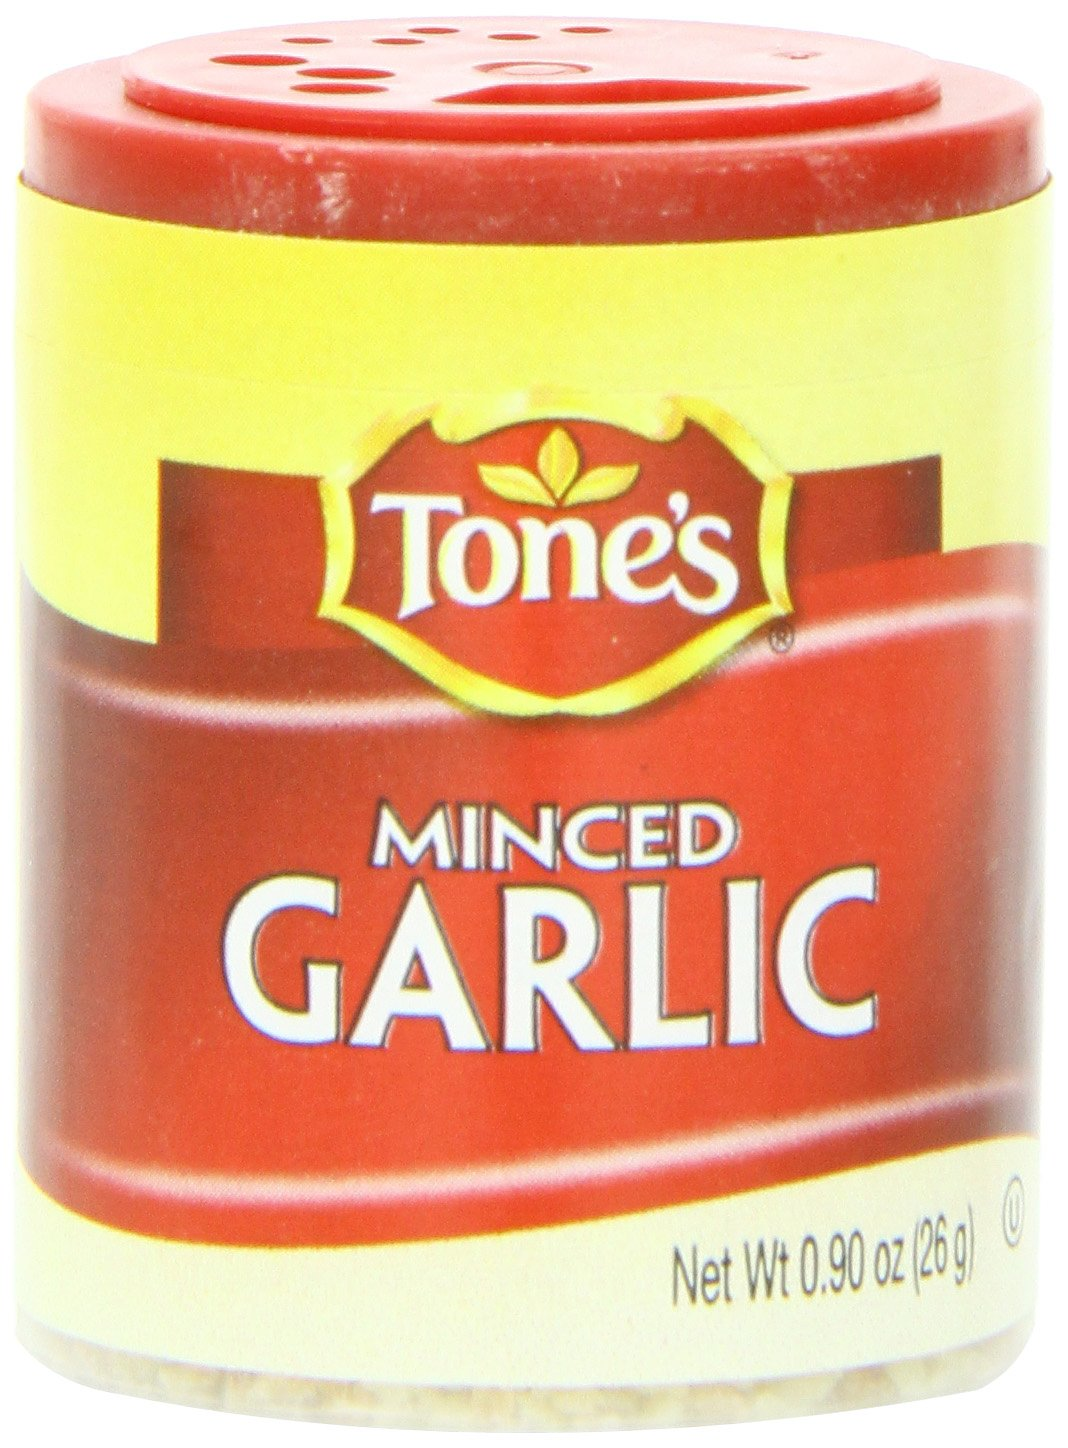 Tone's Mini's Garlic, Instant Minced, 0.90 Ounce (Pack of 6)